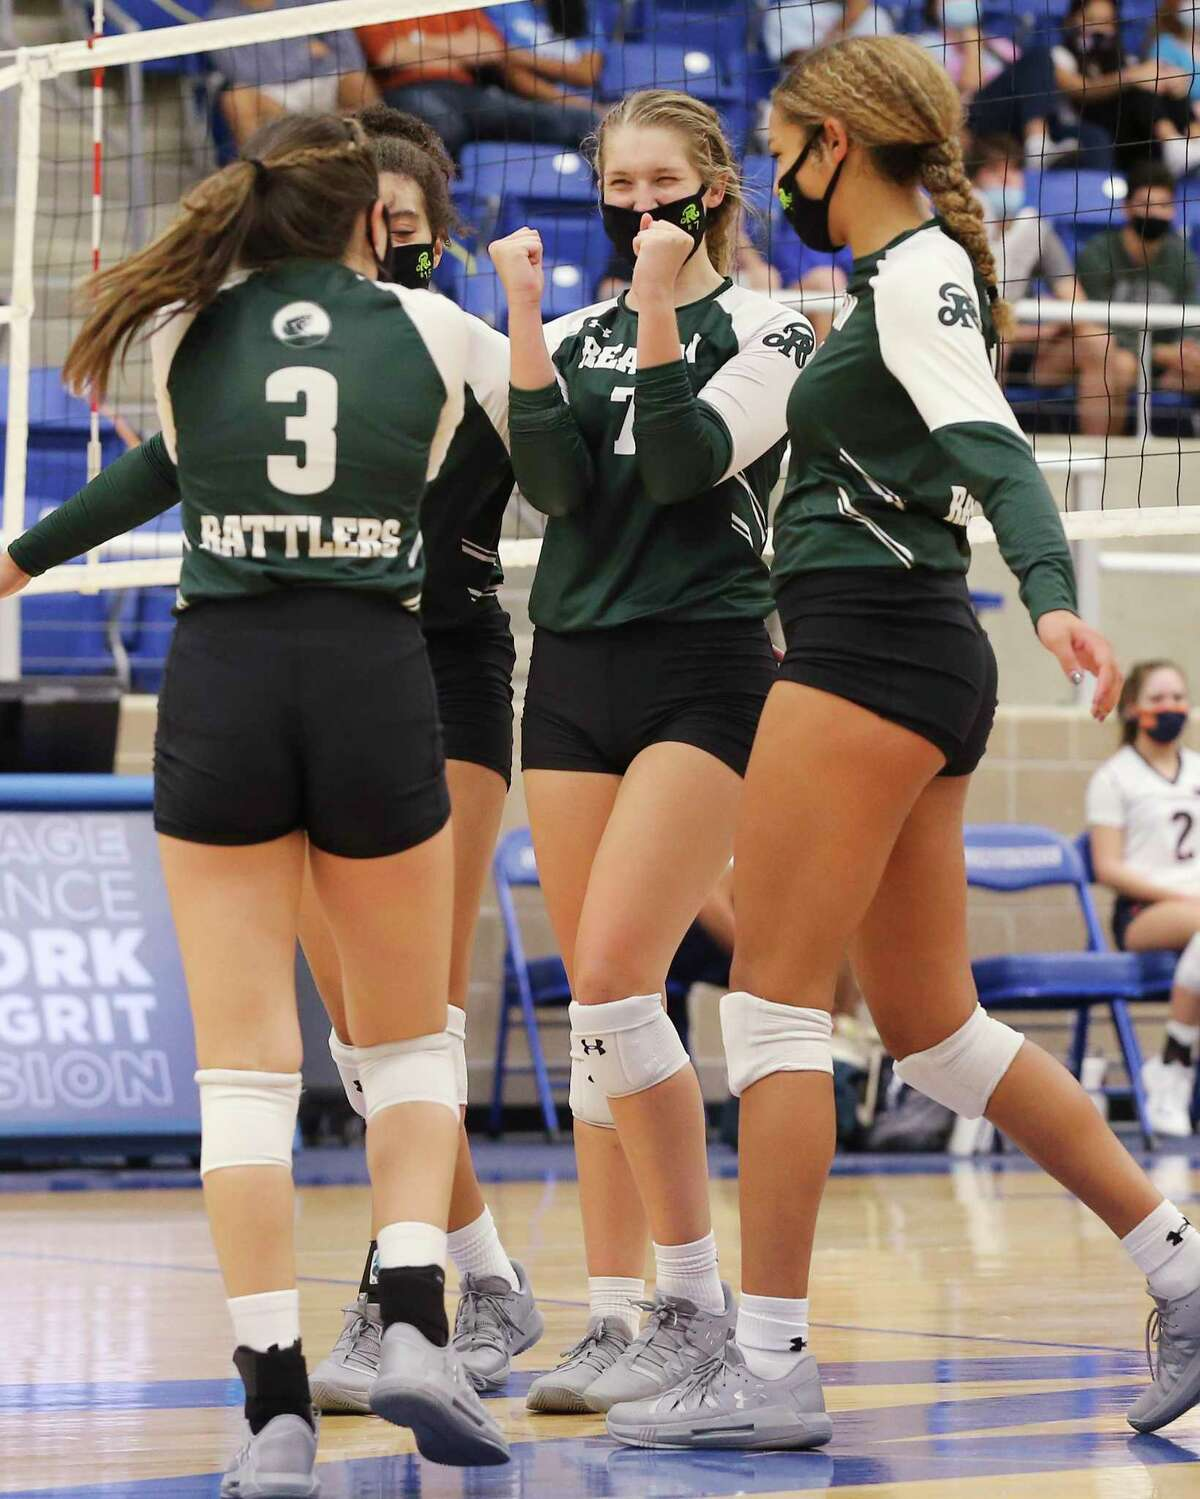 Reagan players celebrate a point against Brandeis during their girls volleyball game at Northside Sports Gym on Tuesday, Sept. 29, 2020. The Broncos defeated the Rattlers, 4-1, to take the contest.